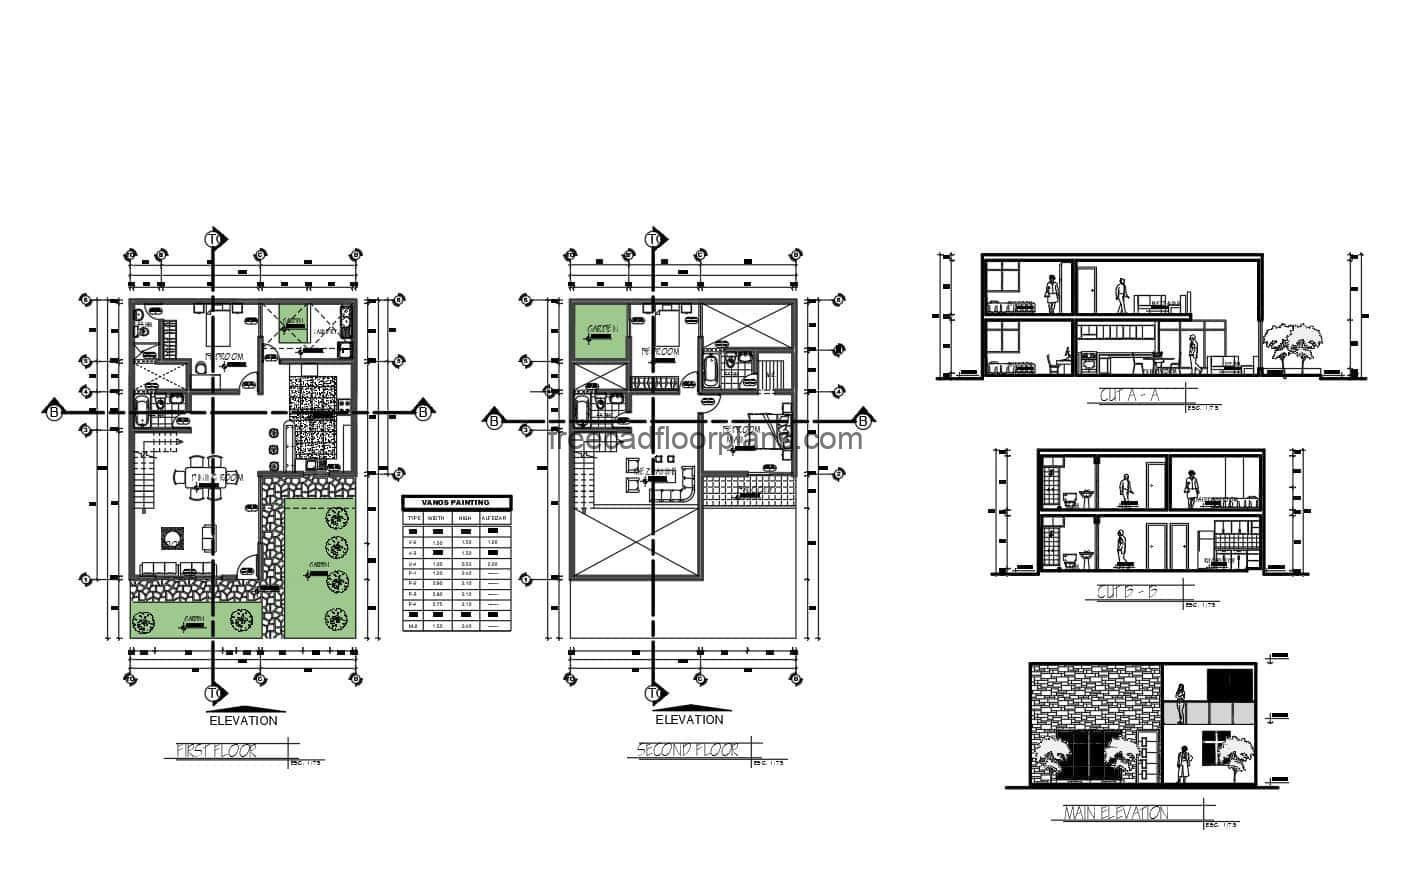 DWG floor plan of a simple two level residence with three bedrooms, two bedrooms on the second level with independent bathrooms, family room and terrace, on the first level there is another bedroom, living room, kitchen on the side, two bathrooms, laundry area and front garden. Architectural plans with dimensions for free download in DWG Autocad format.